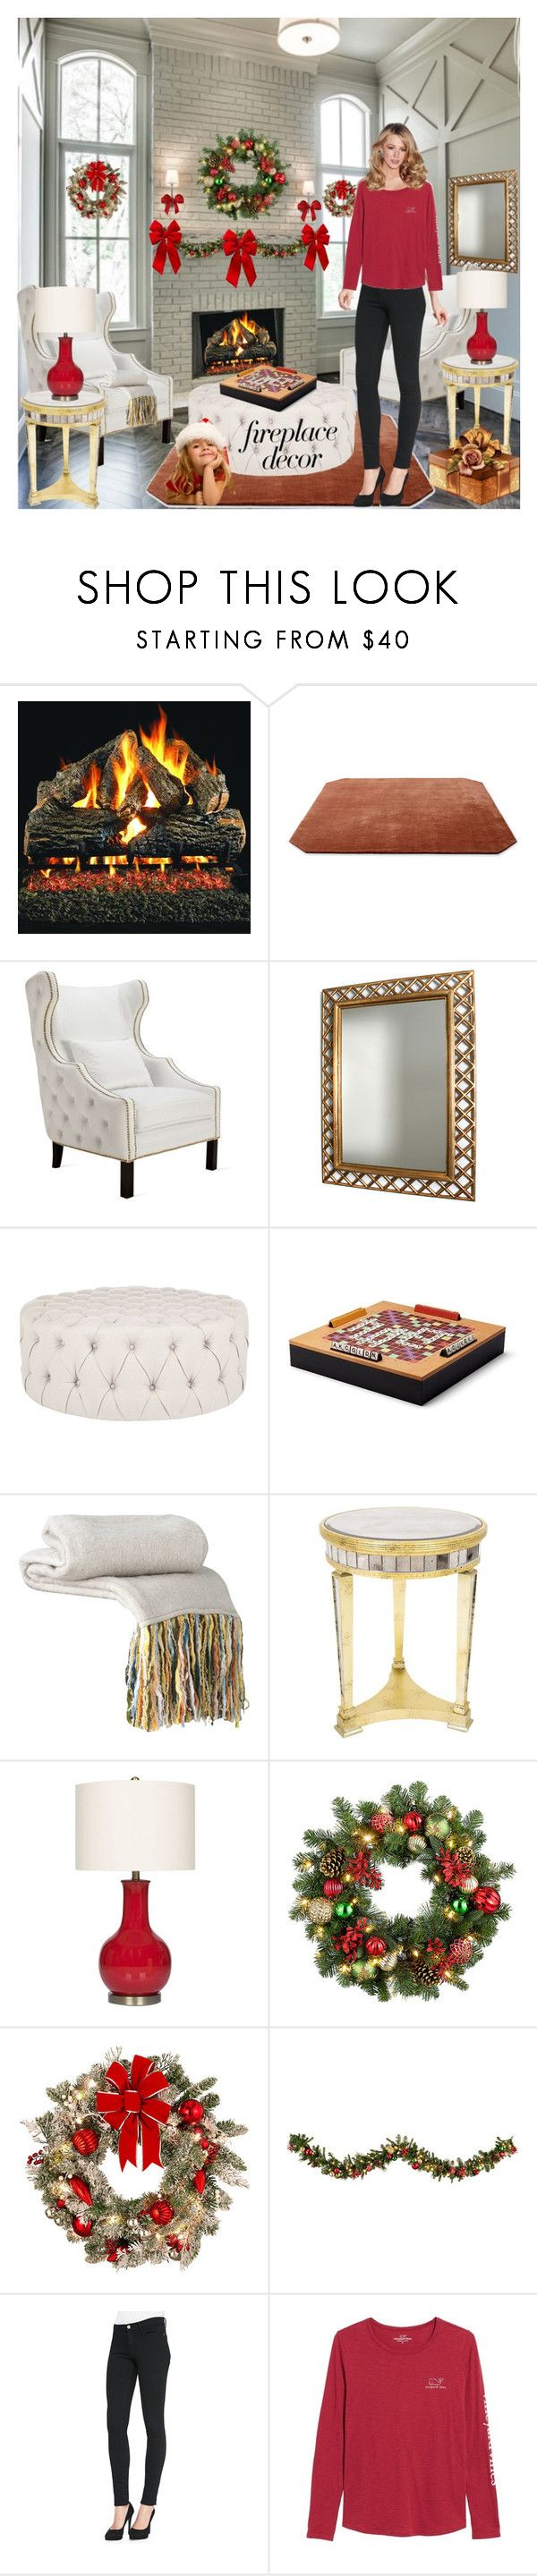 """""""Relaxing By The Fire!"""" by bevmardesigns ❤ liked on Polyvore featuring &Tradition, Rosin, Safavieh, Aspinal of London, Abbyson Living, Improvements, Frame and Vineyard Vines"""